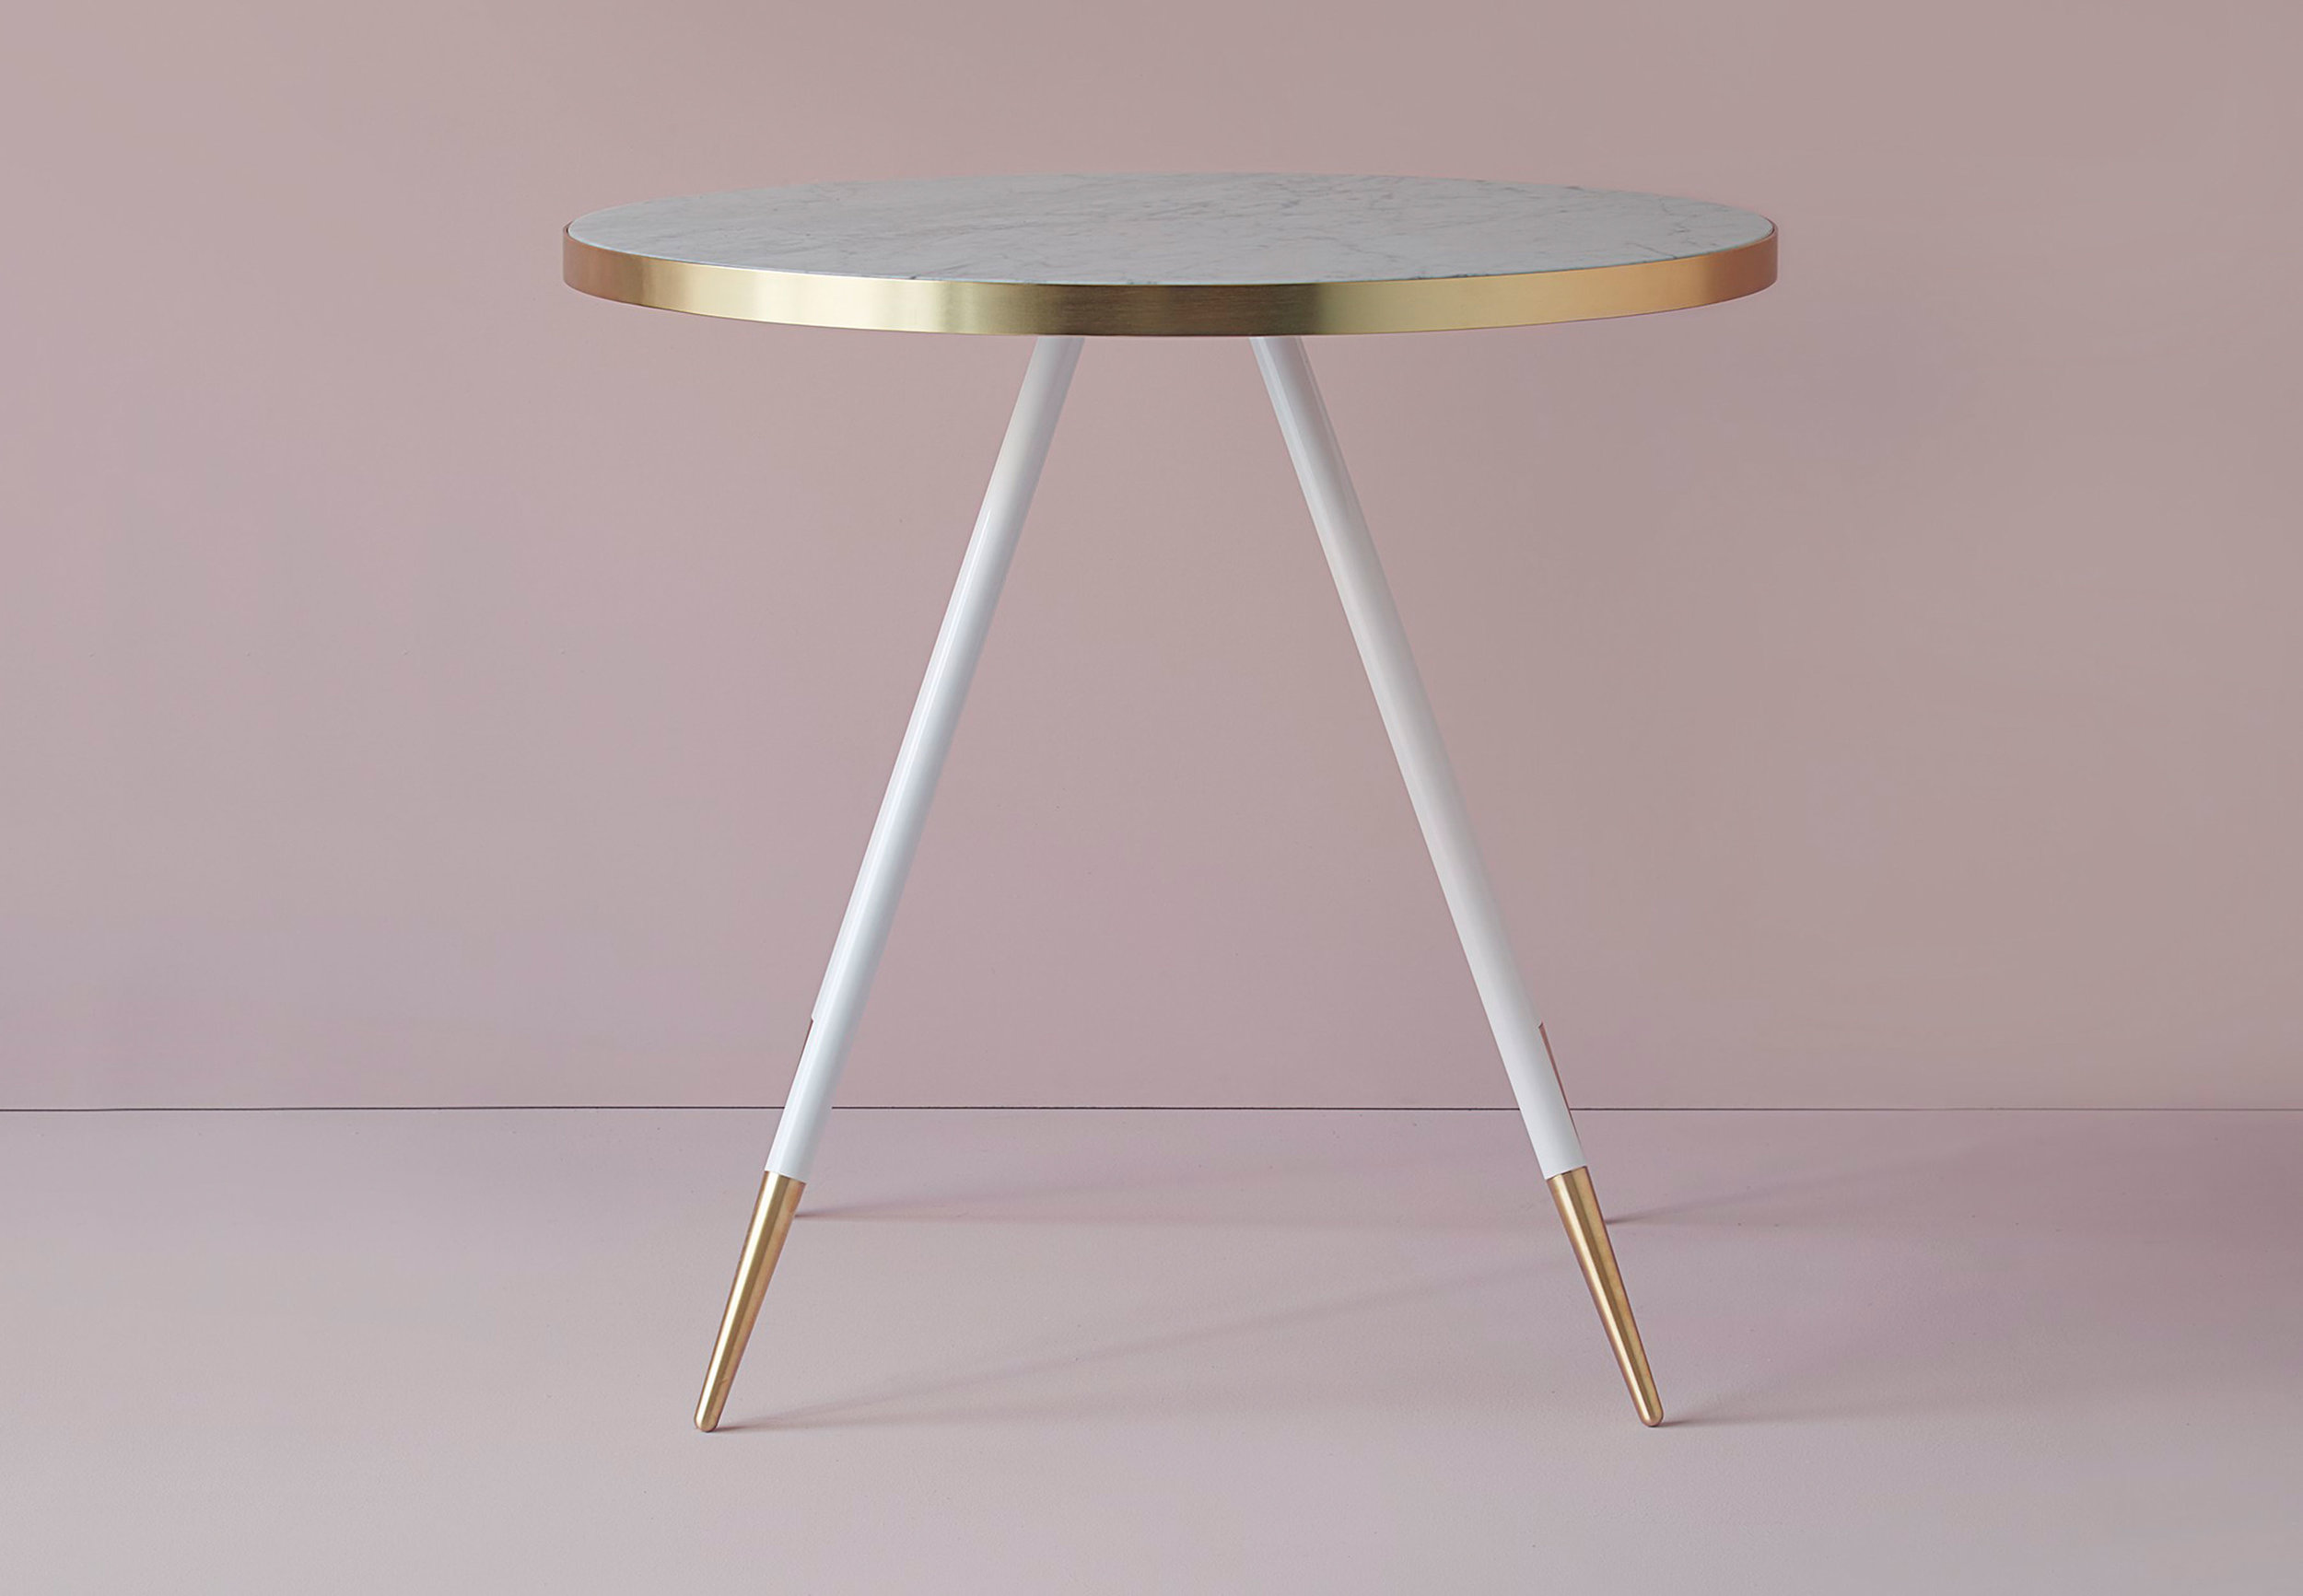 Band dining table / Bethan Gray